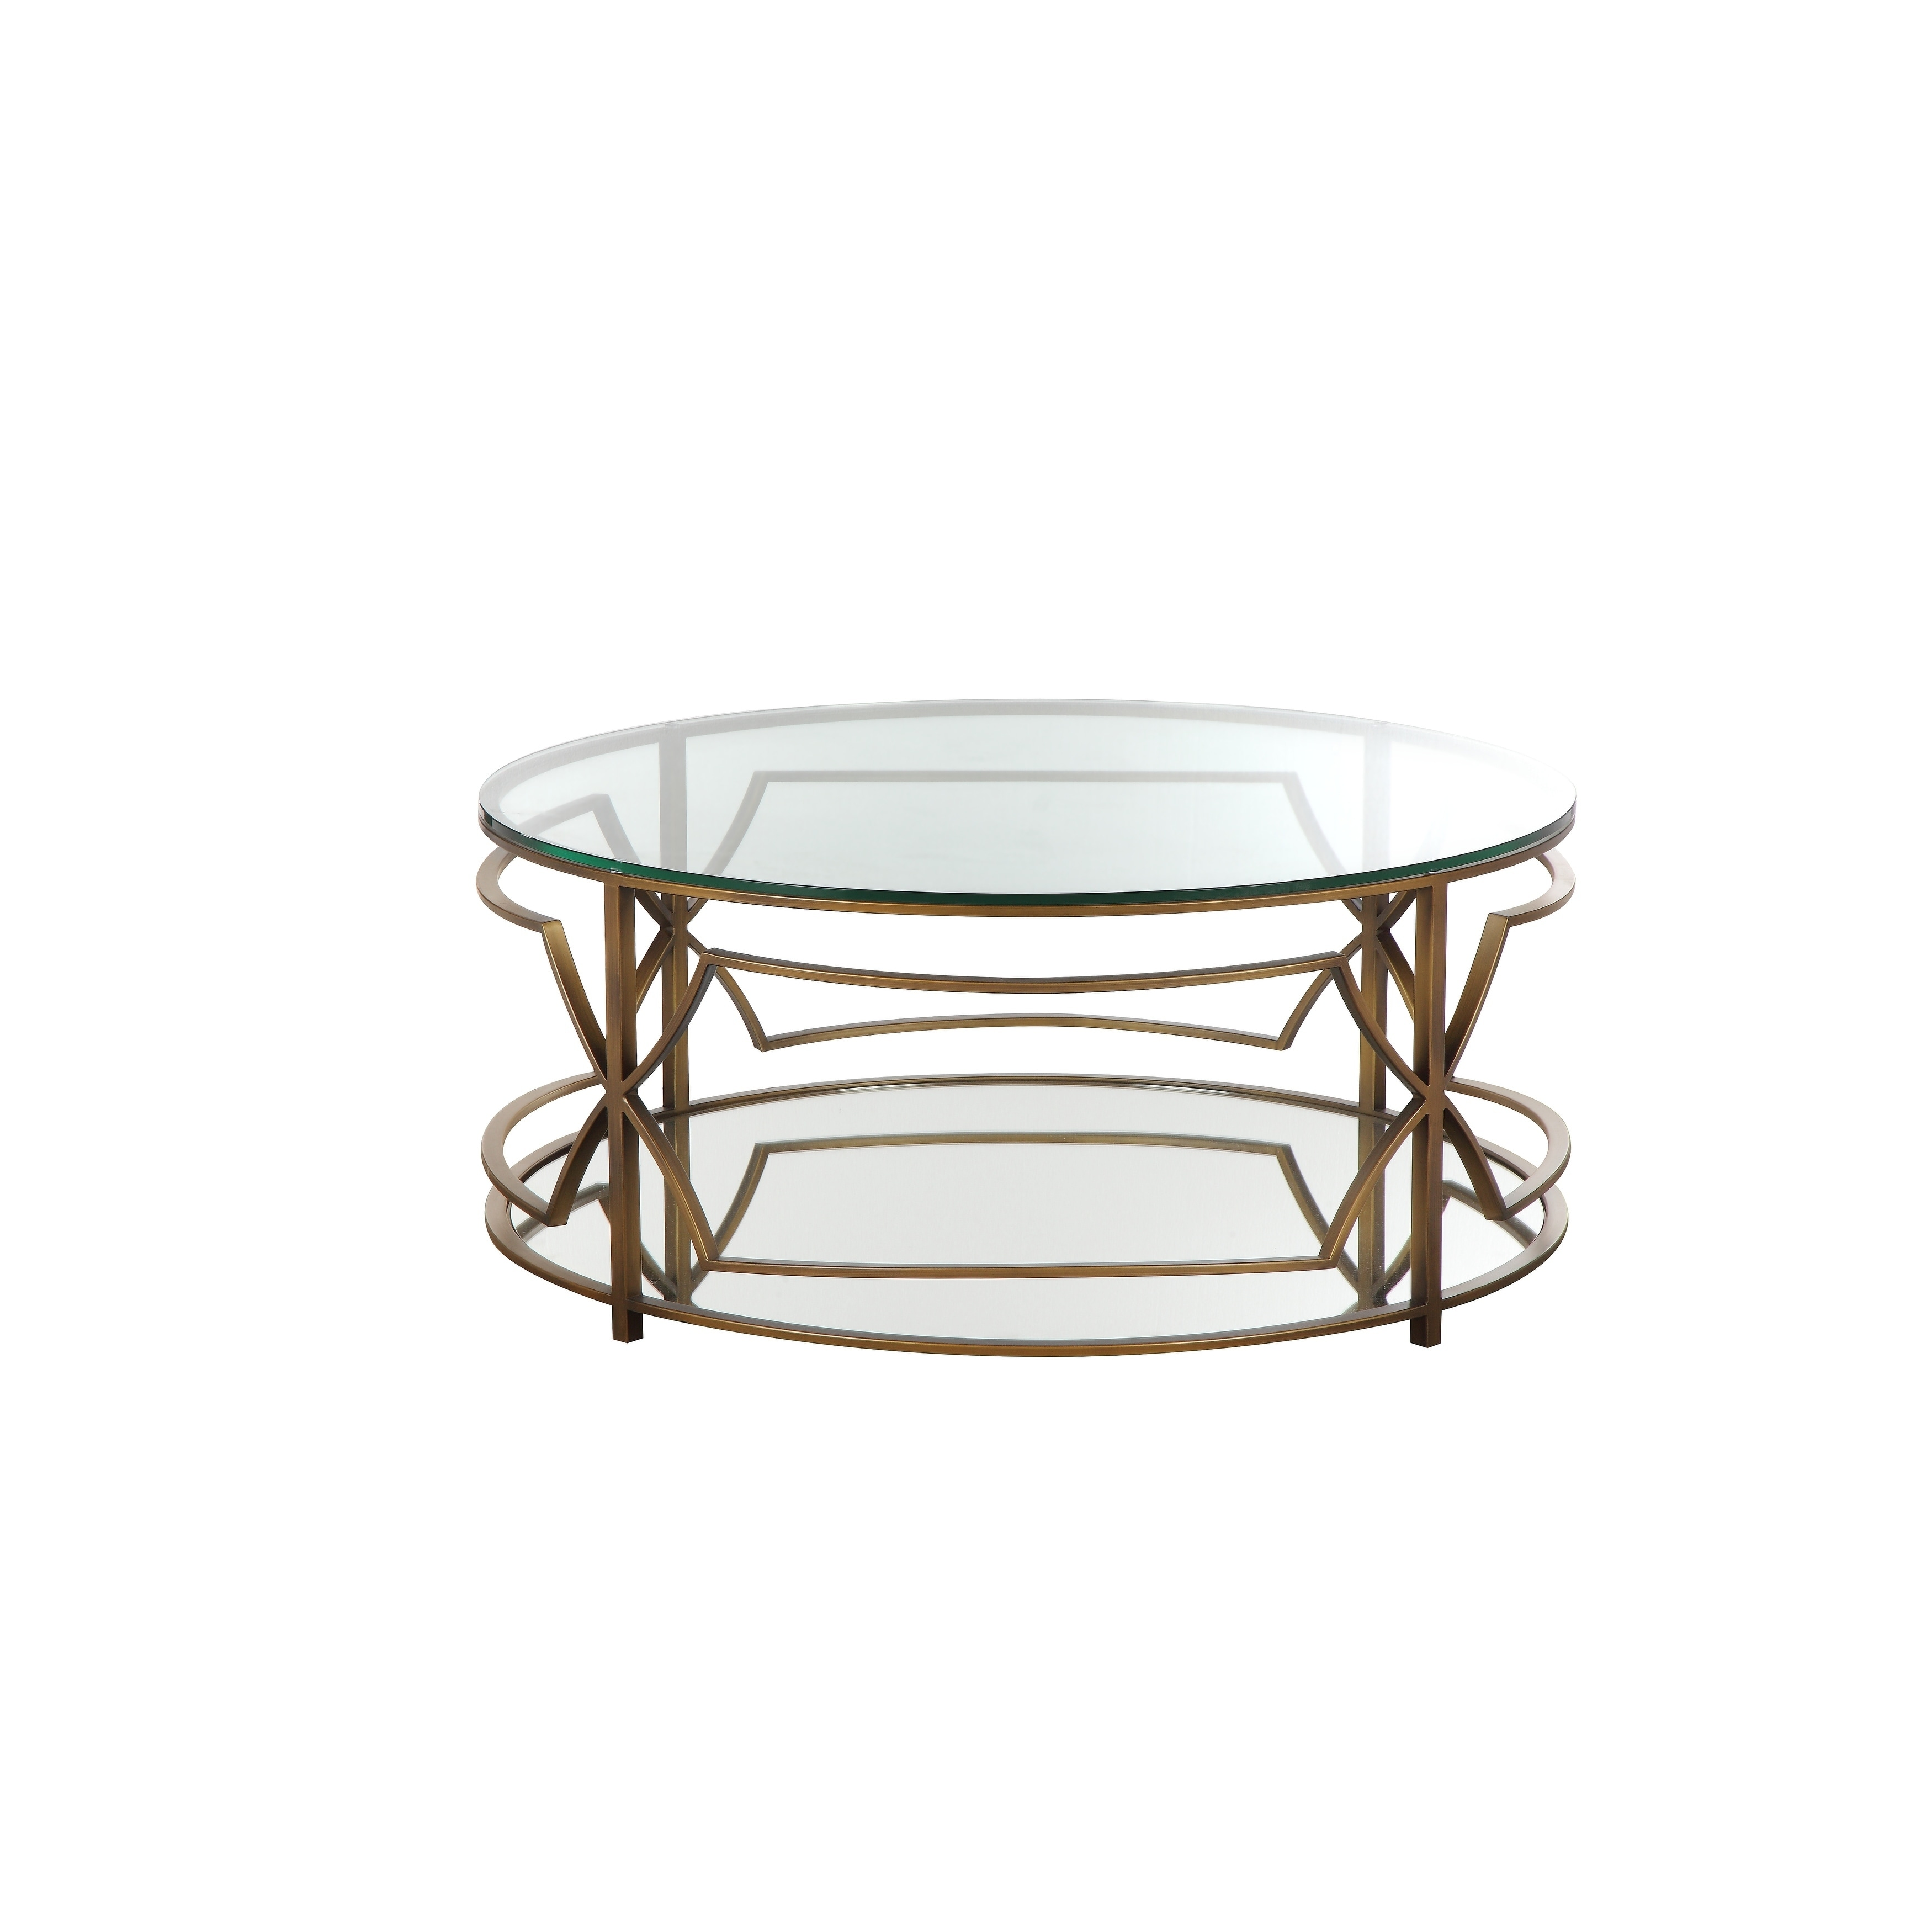 Shop Glass Round Coffee Table With Metal Open Geometric Design Base, Bronze  And Clear   On Sale   Free Shipping Today   Overstock   27633409